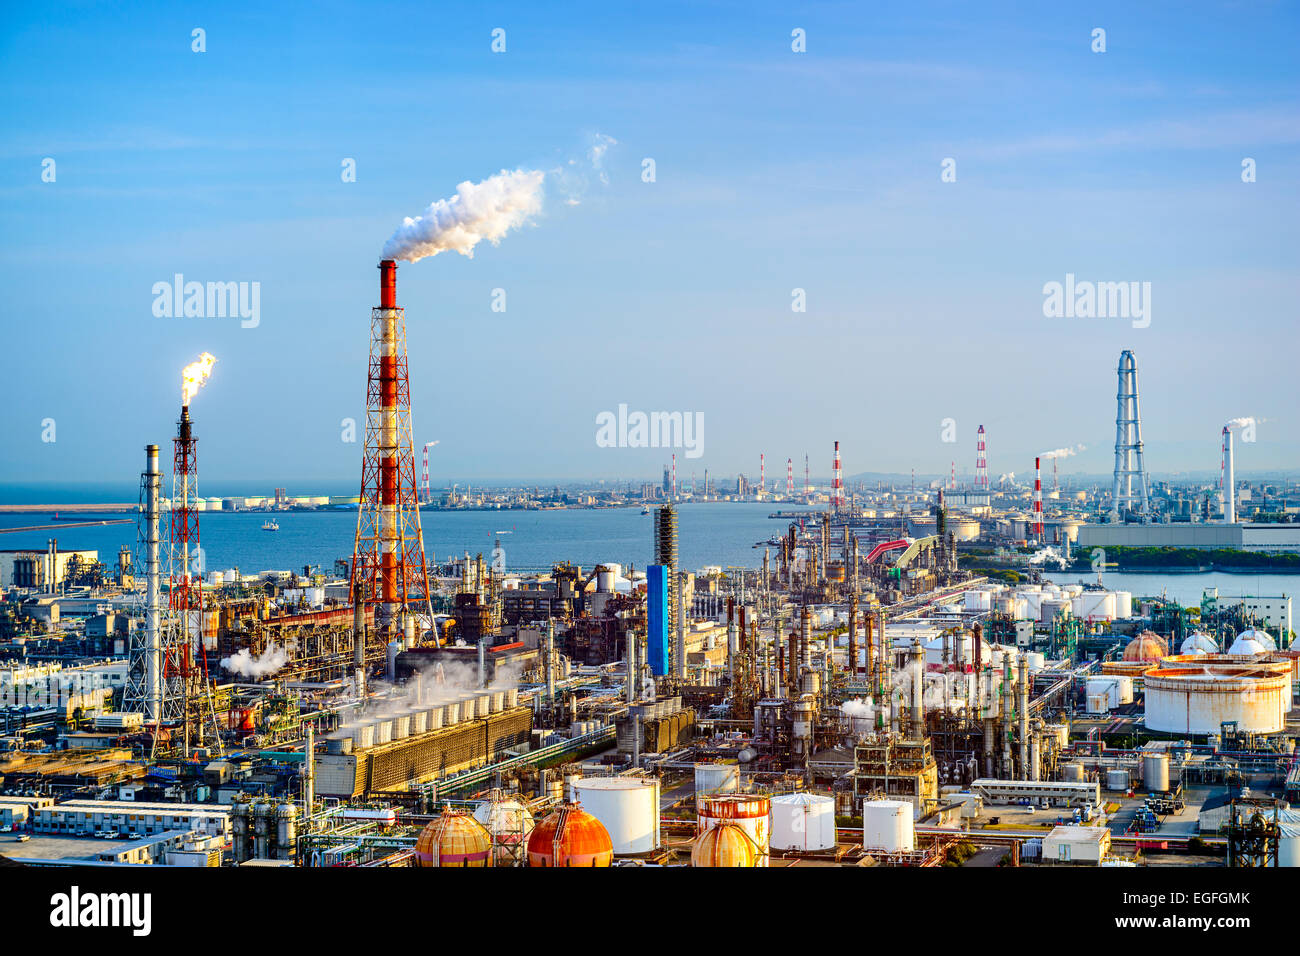 Factories in Yokkaichi, Japan. - Stock Image